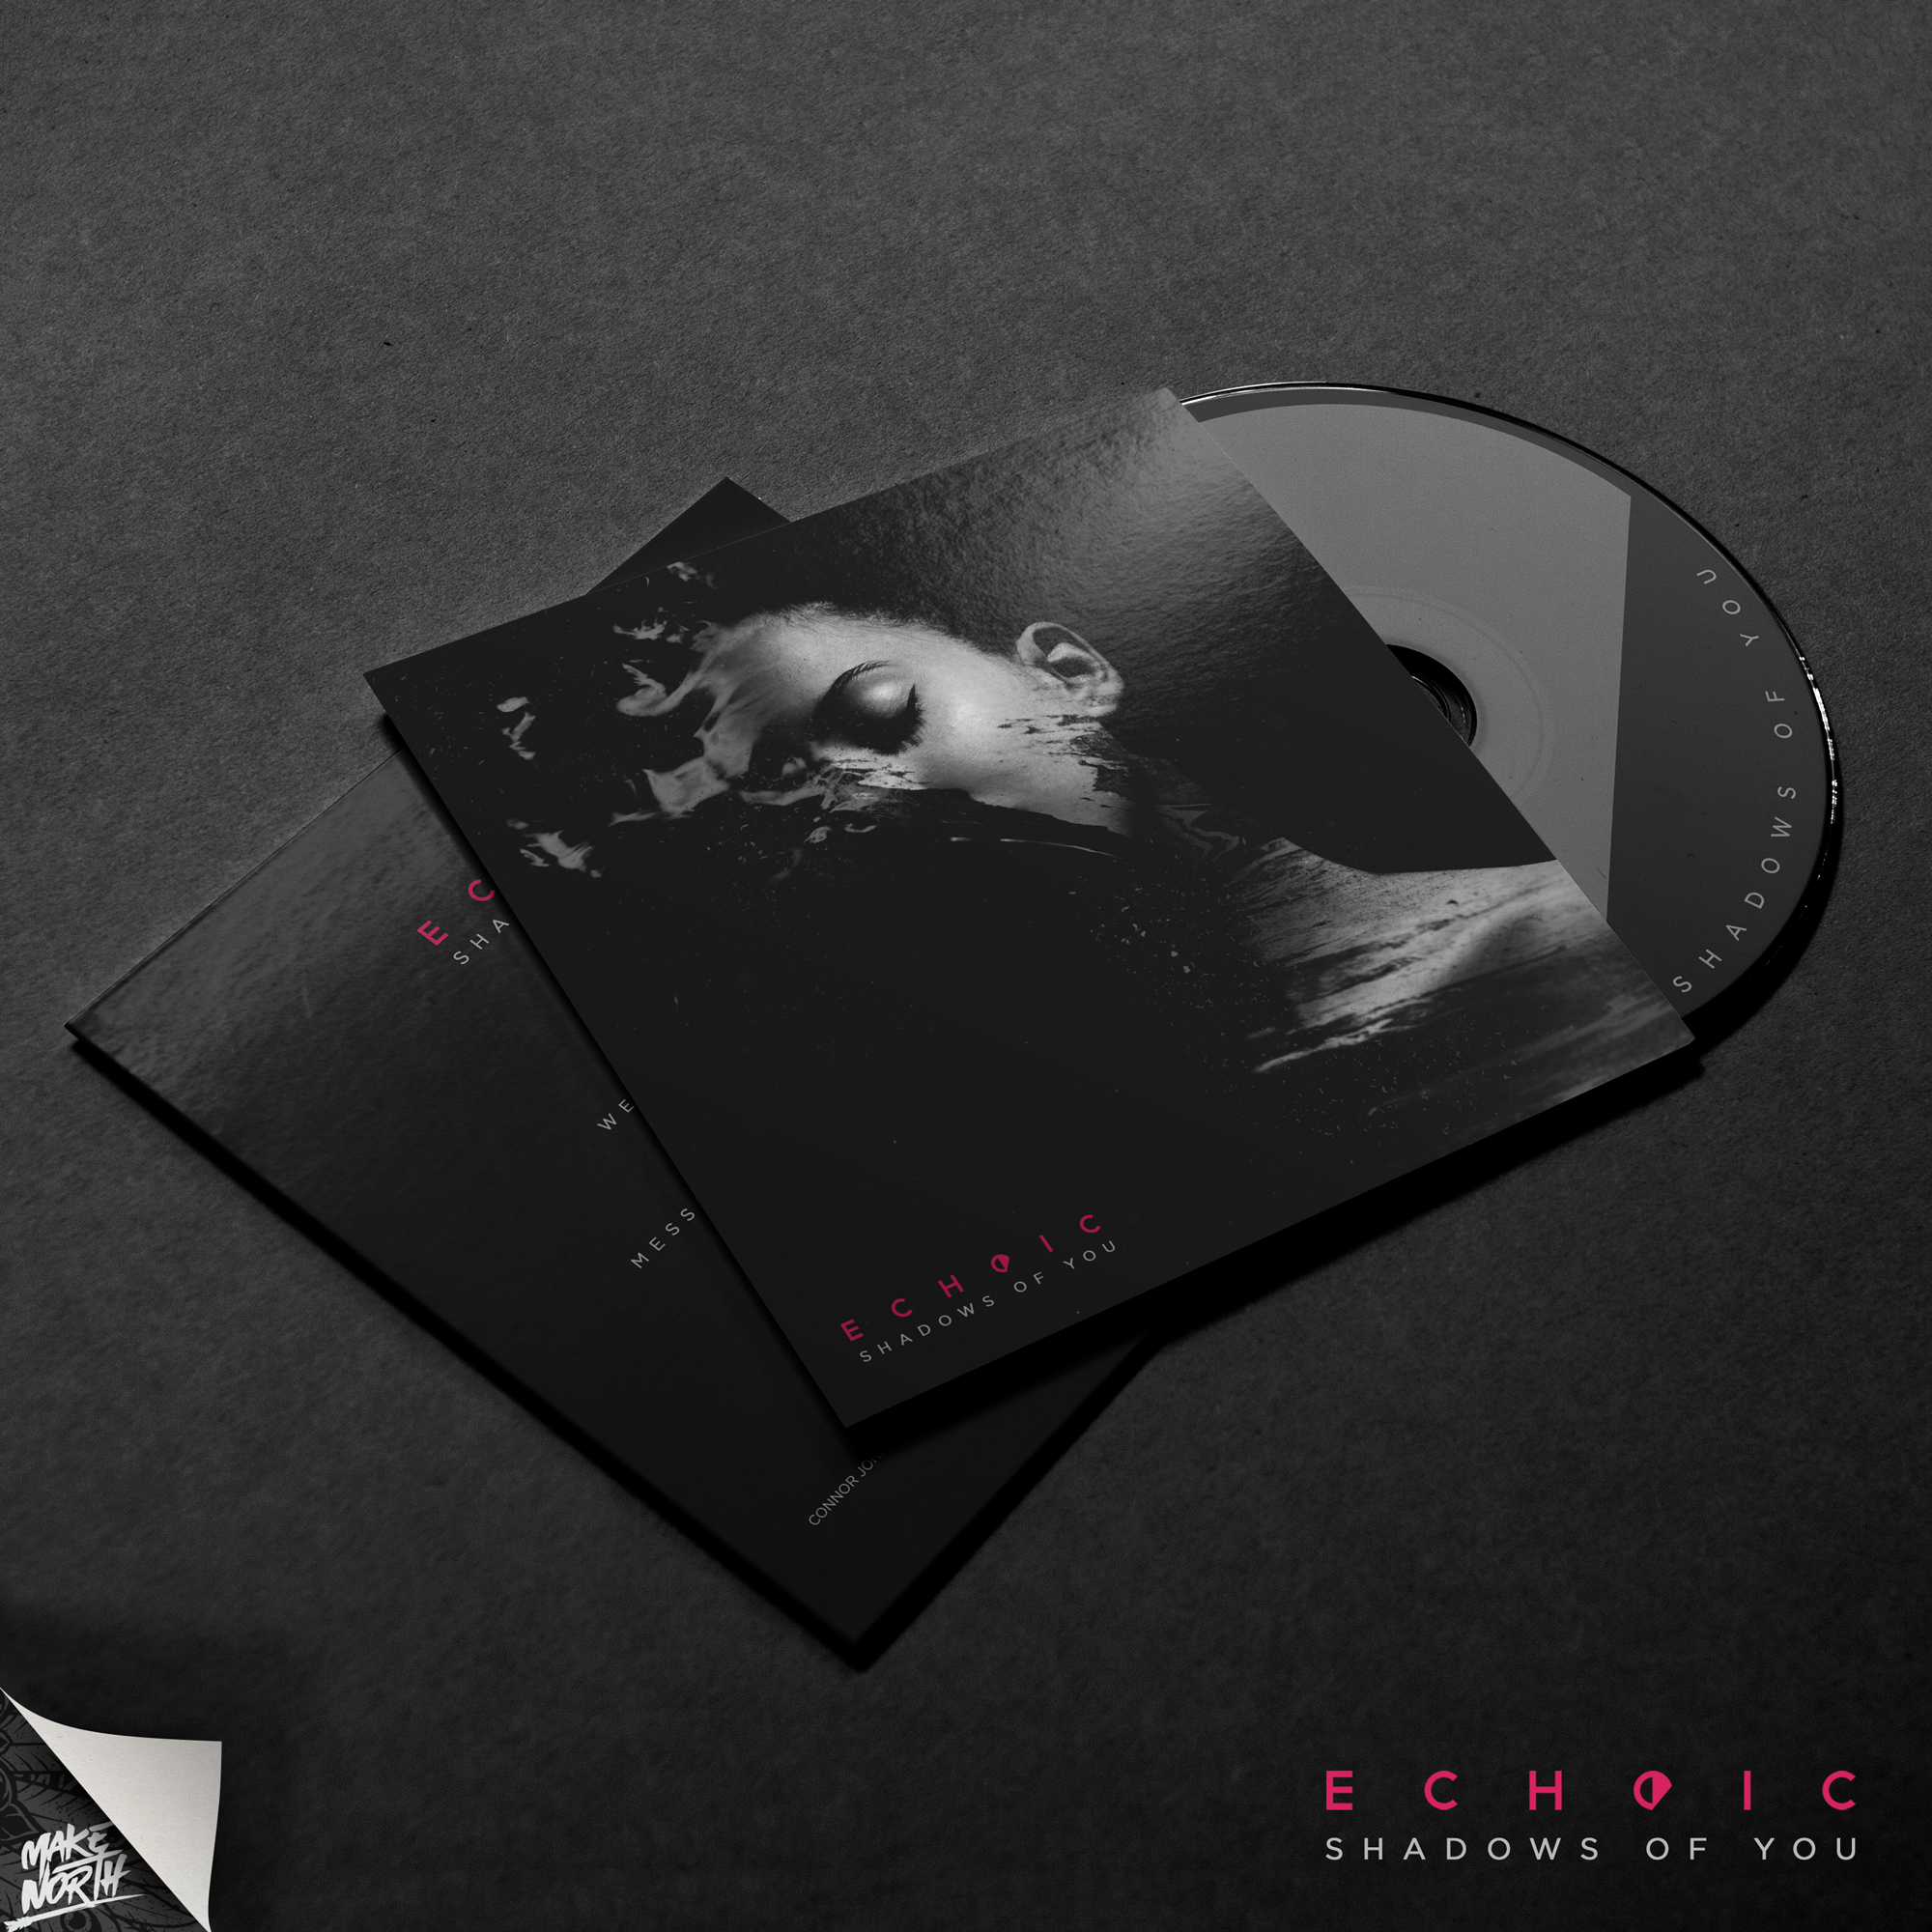 Shadows of You EP (Physical CD) - Echoic